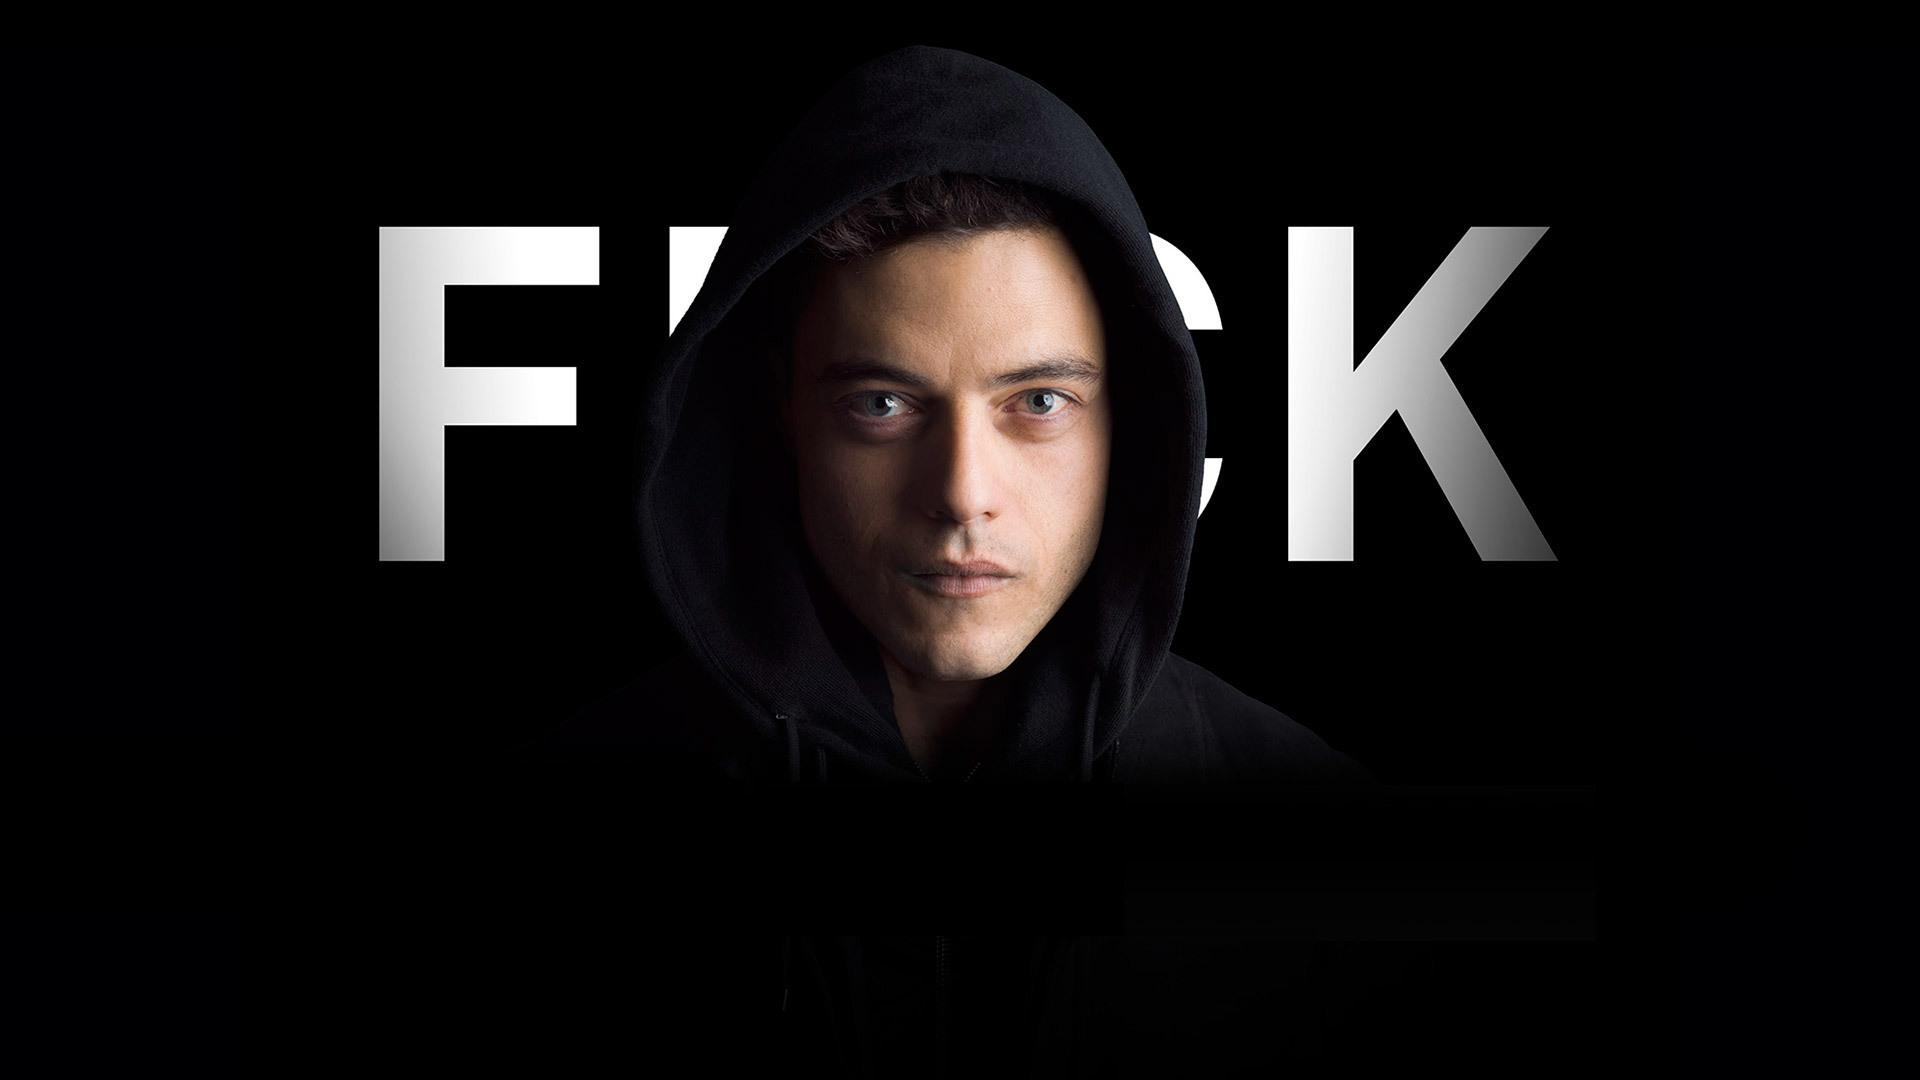 Mr. Robot Wallpapers, Pictures, Image